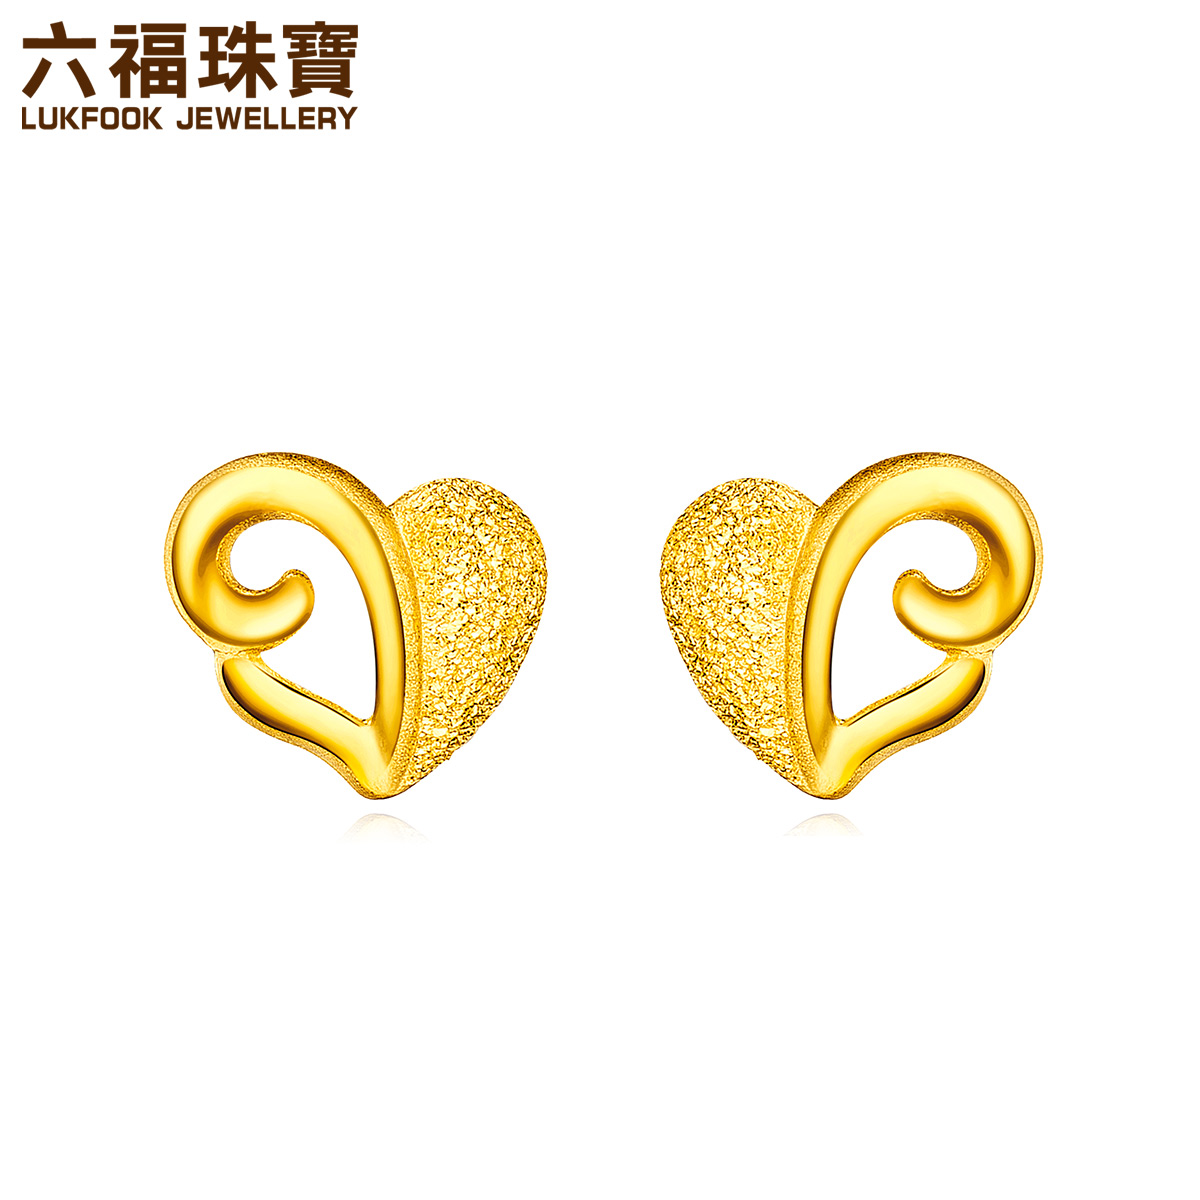 Six Blessing Jewelry Gold Earrings Brushed Heart Shaped Female Gift Price Gdg50023